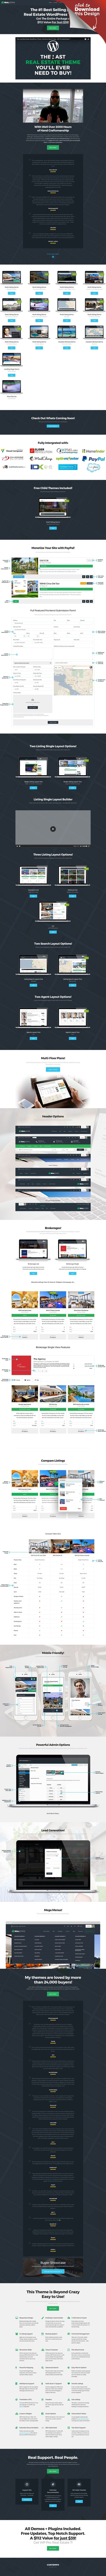 WP Pro Real Estate 3 Responsive WordPress Theme advanced search, ajax, blue, business, clean, corporate, grey, jquery, listing, php, real estate, realestate, white, wordpress NEW! Checkout my latest theme WP Pro Real Estate 7! The last real estate theme you'll ever need to buy! WP Pro Real Estate 7 is the end all be all real estate WordPress theme, with powerful options & tools, advanced search & mapping, endlessly customizable with liv...